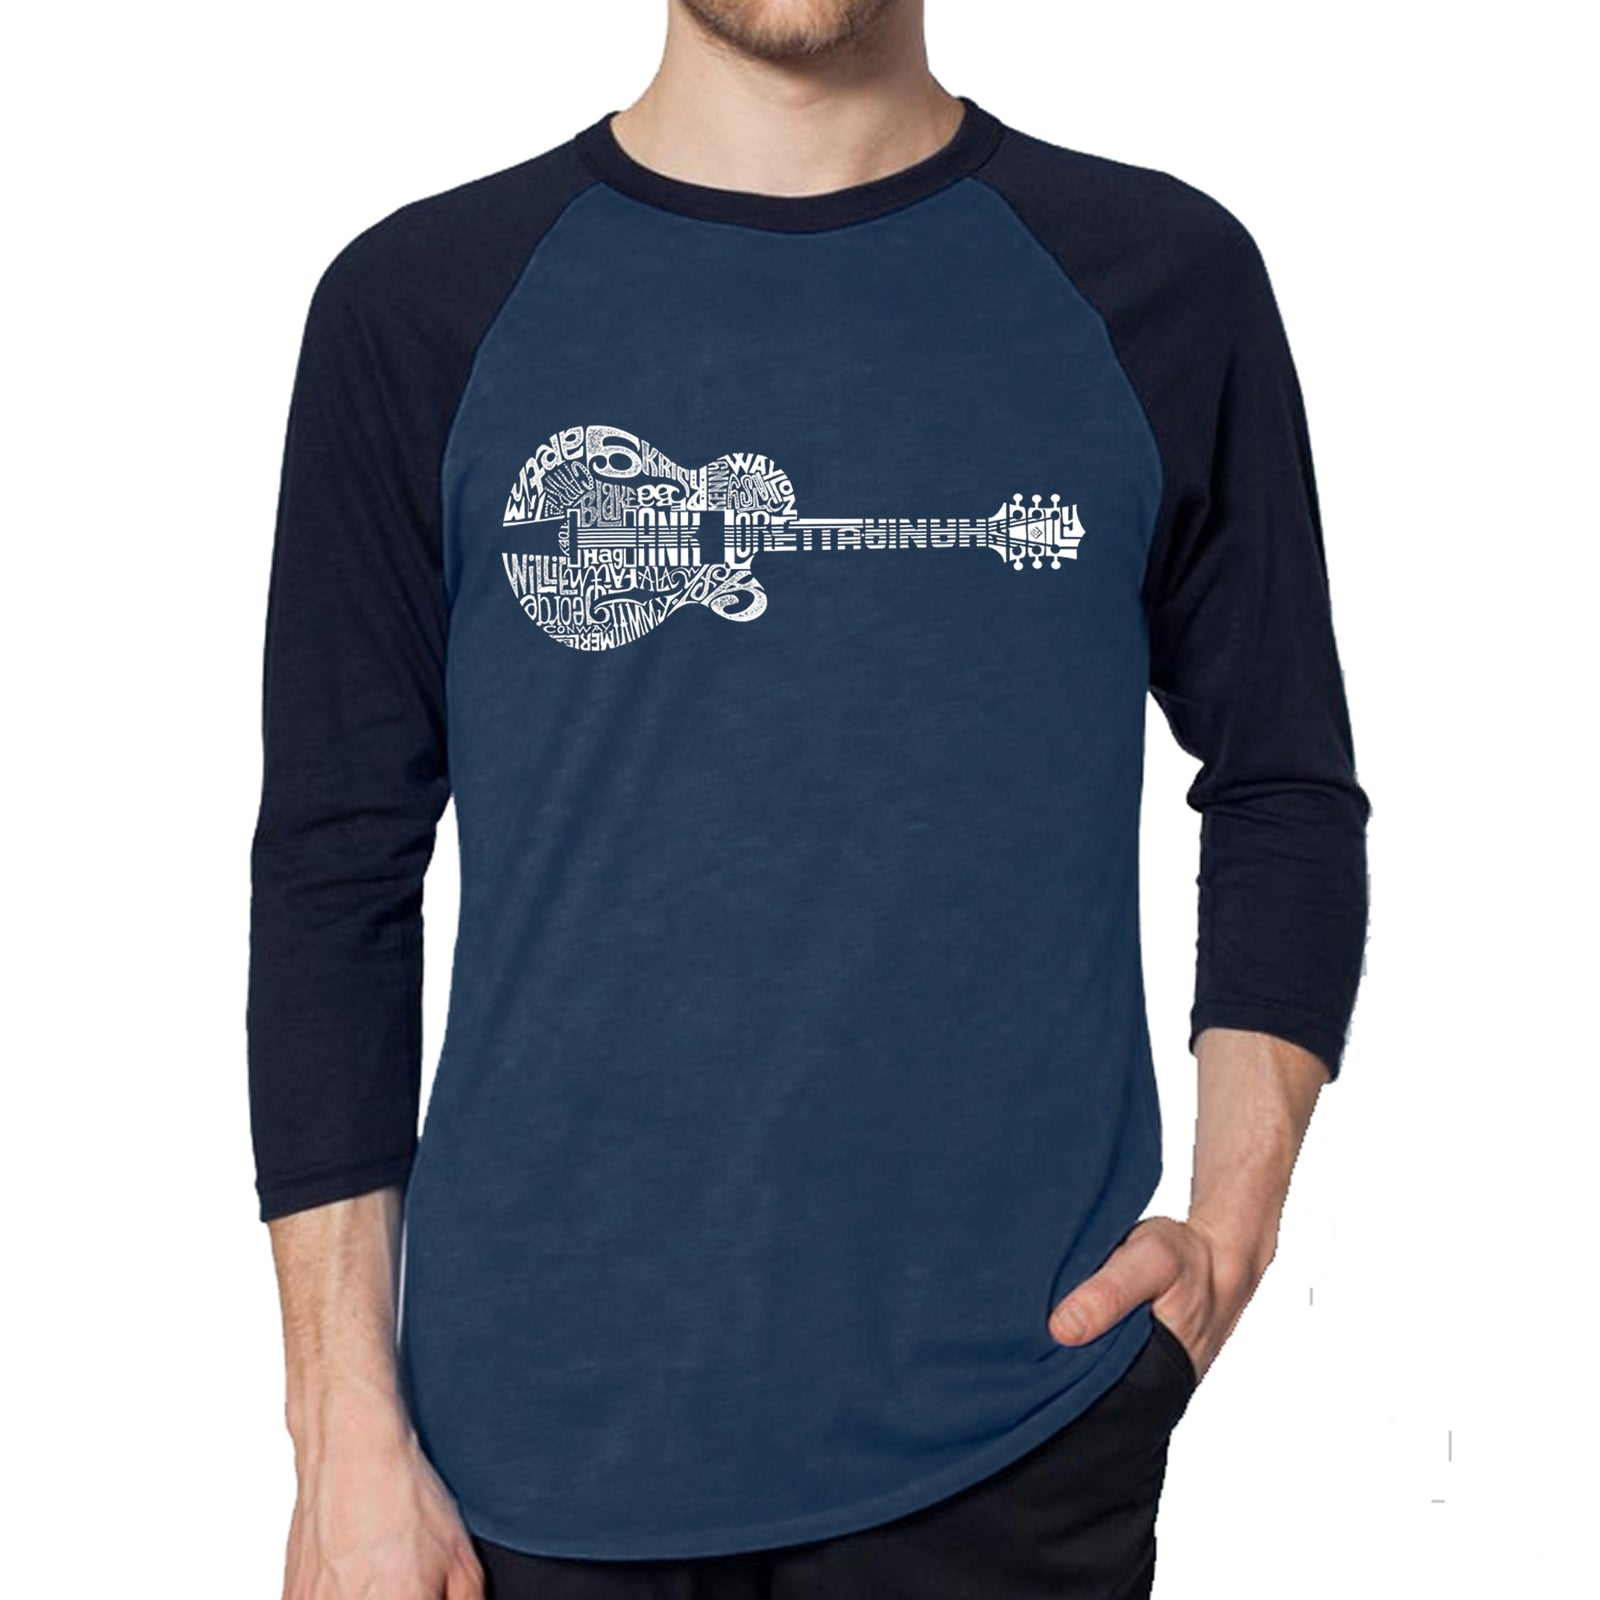 Men's Raglan Baseball Word Art T-shirt - Country Guitar